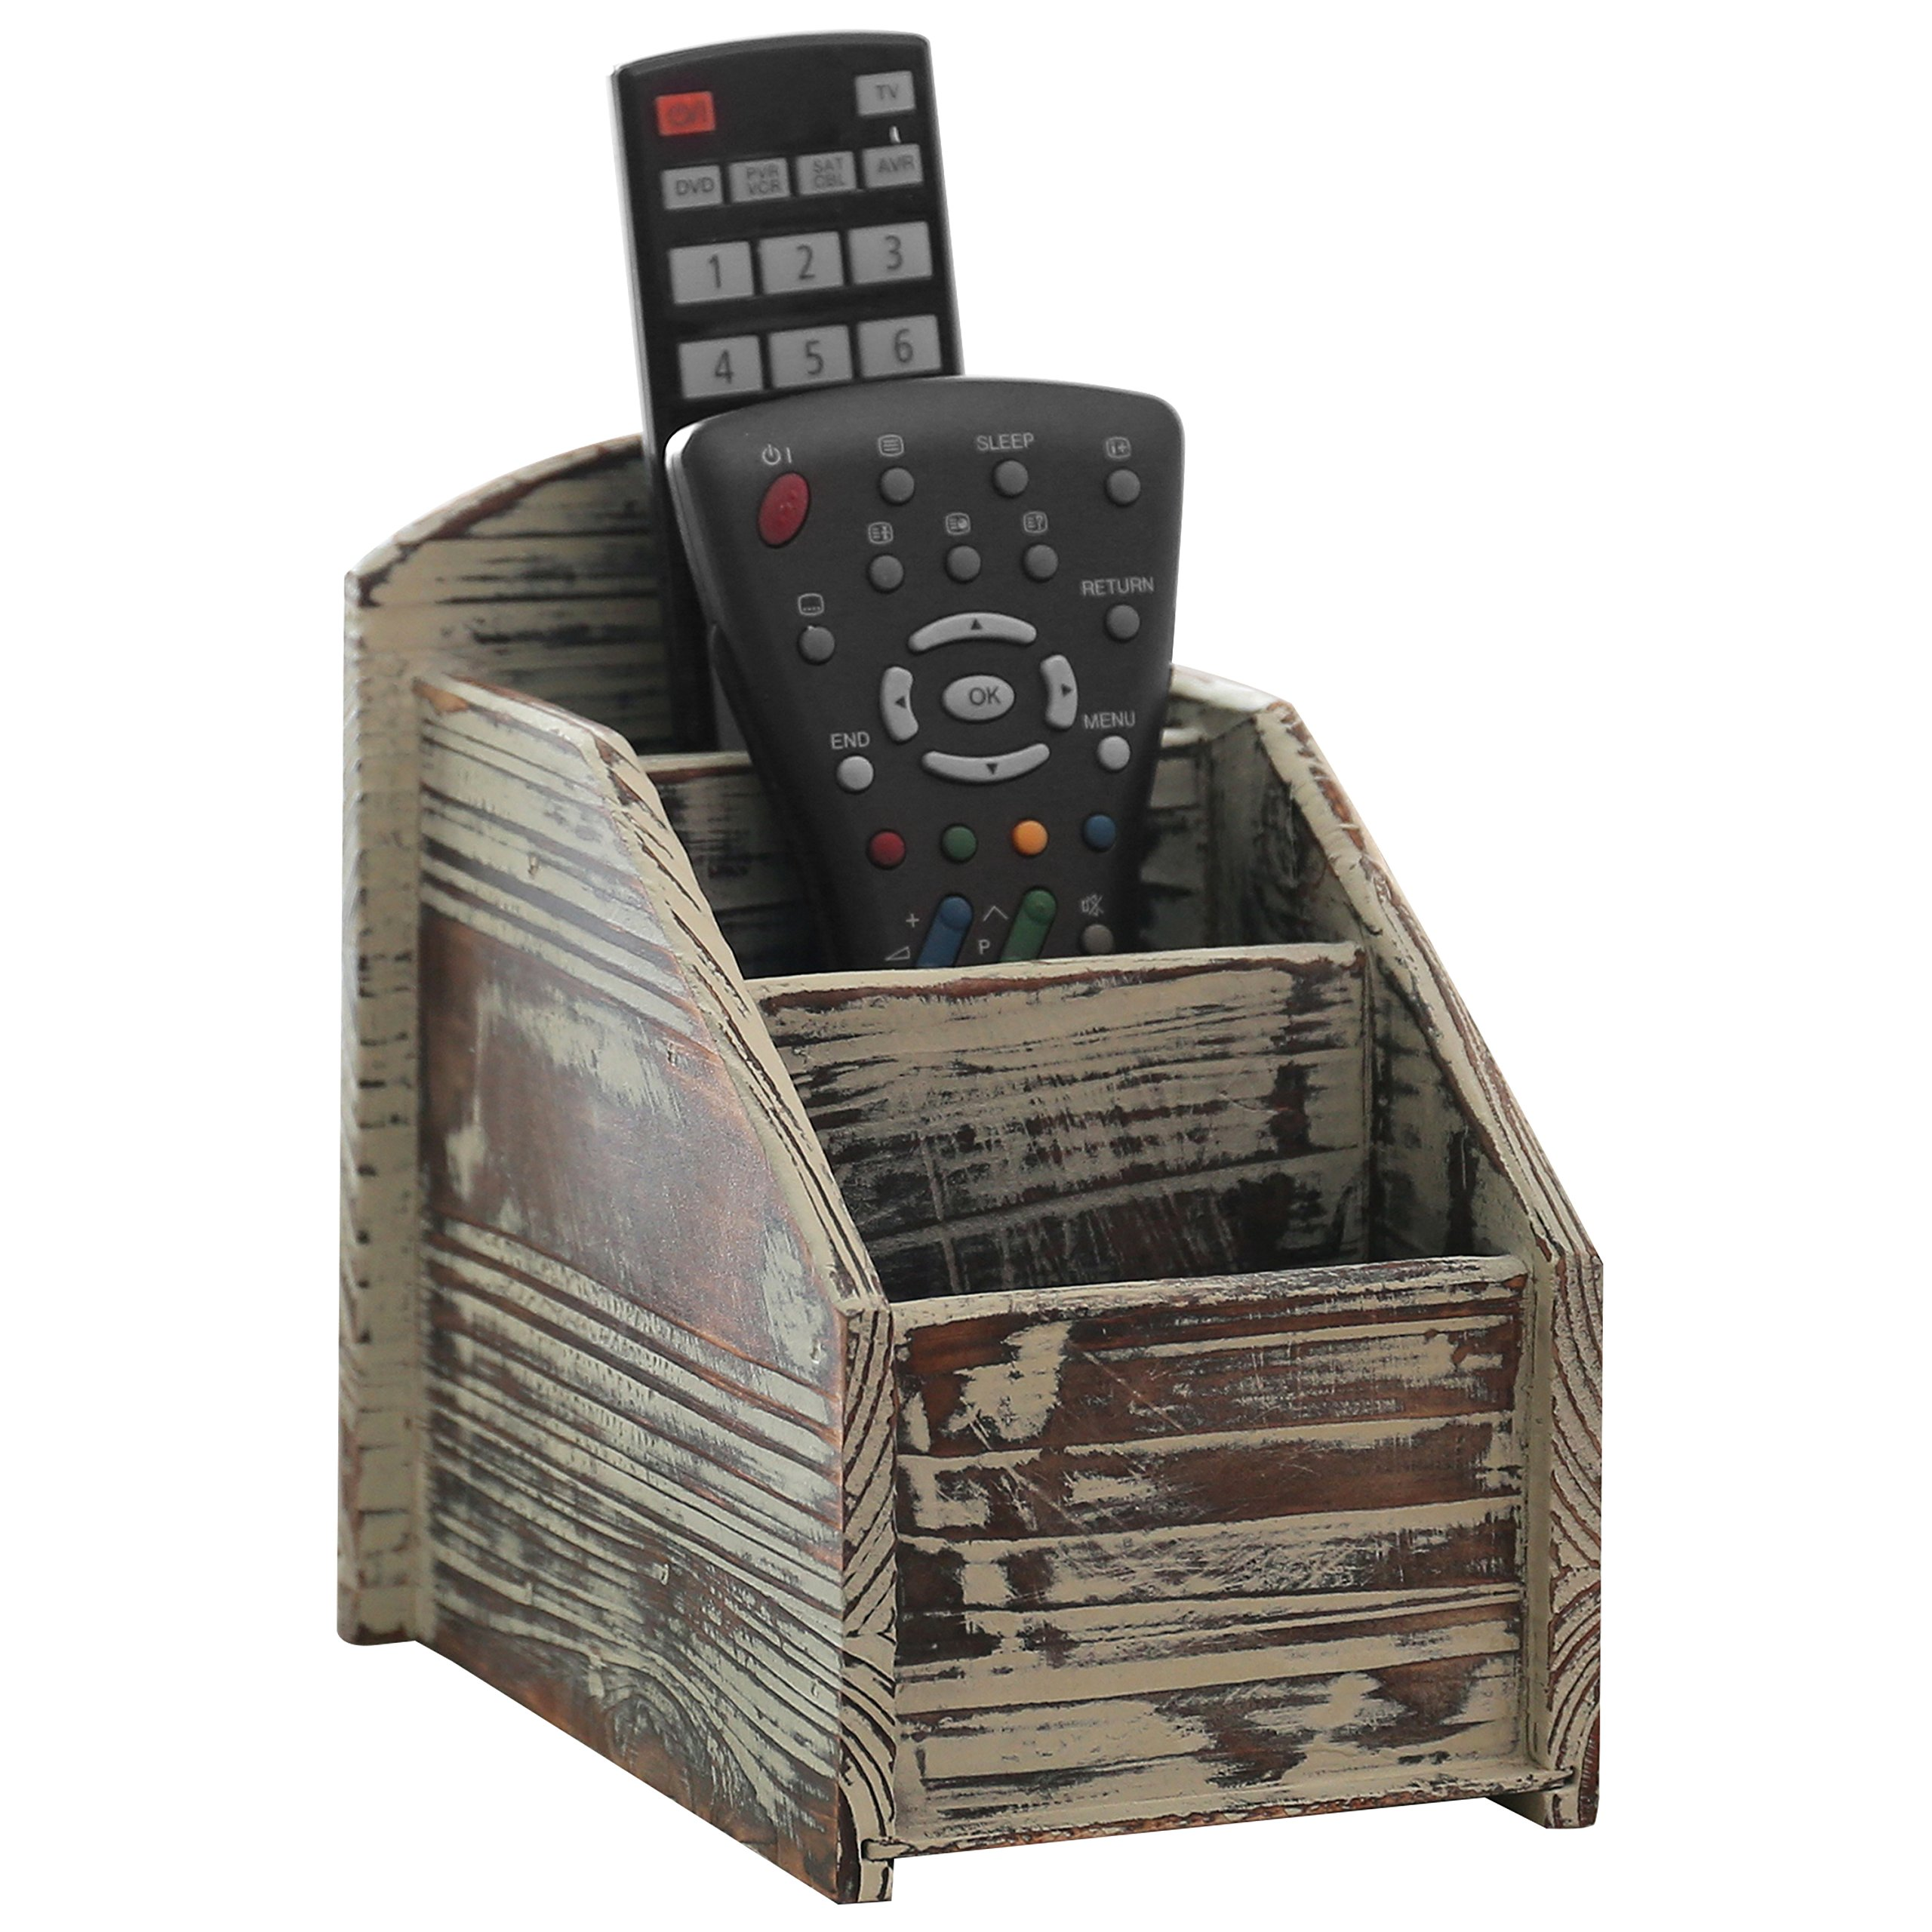 3 Slot Rustic Torched Wood Remote Control Caddy/Media Organizer, Storage Rack by MyGift